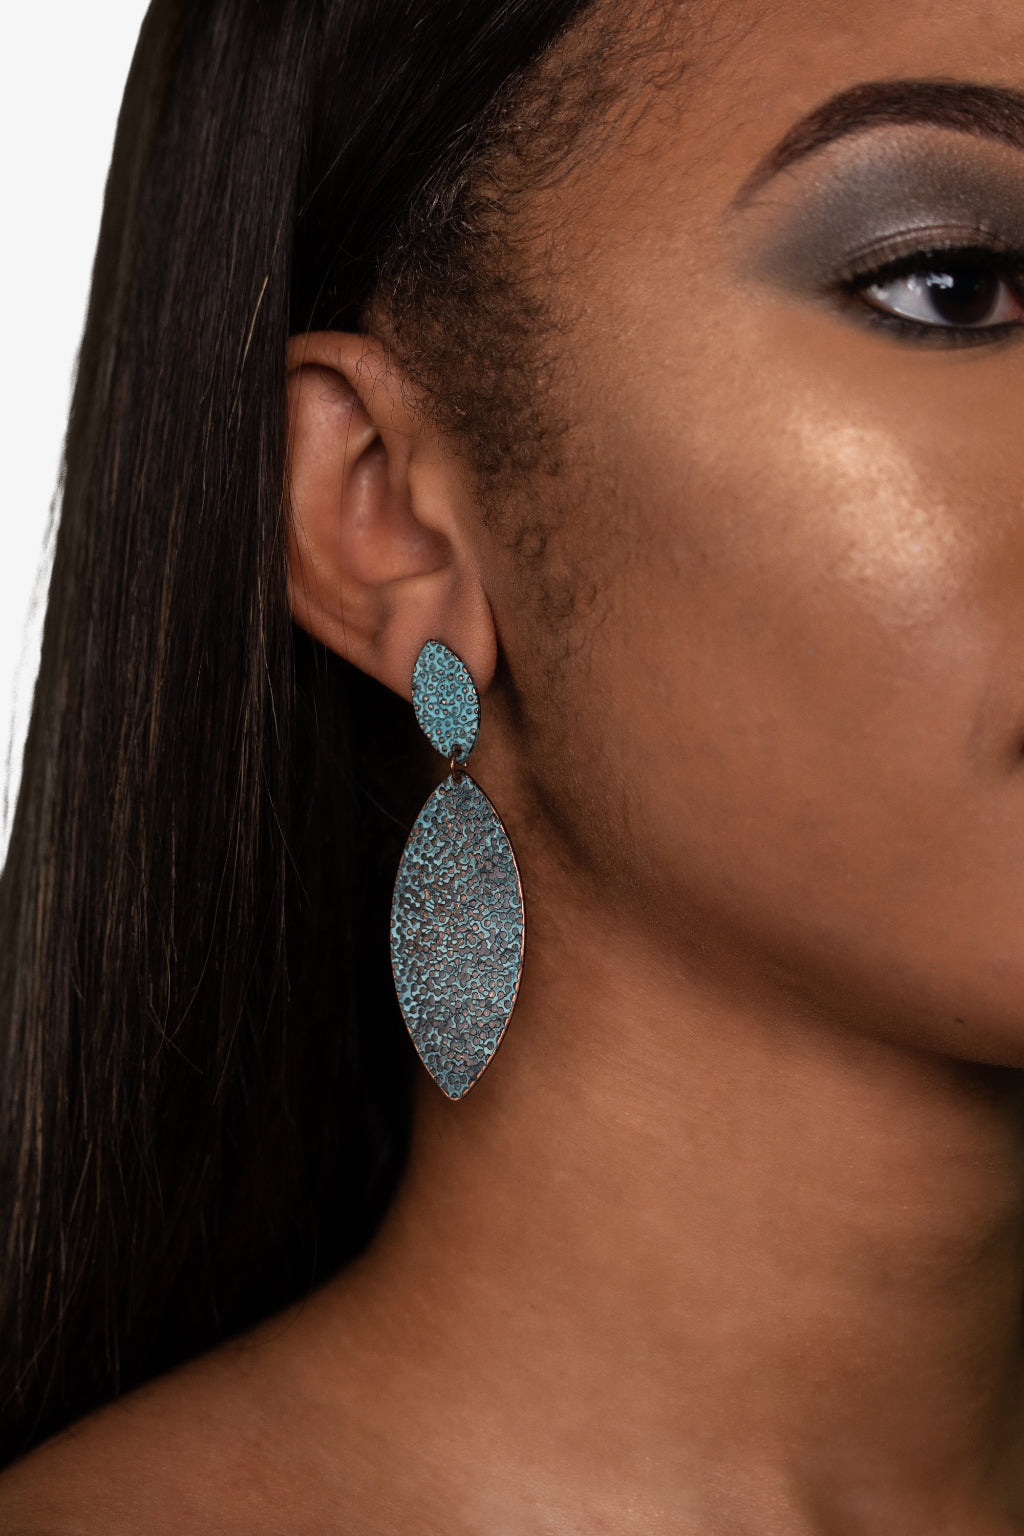 Textured Dangle Drop Earrings, Earrings - Lavish Realm